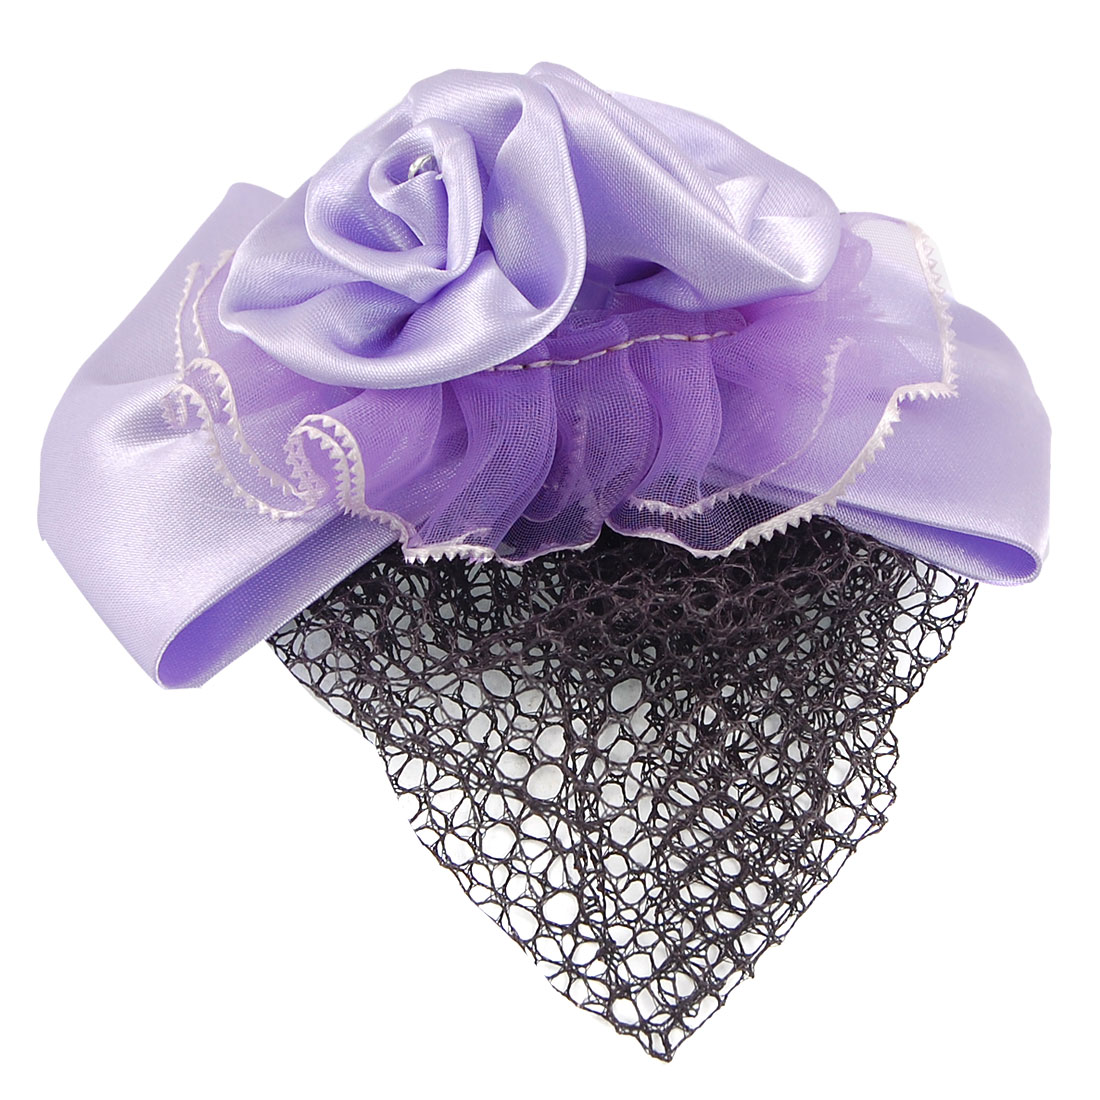 Double Flower Bowknot Barrette Hair Clip Bun Cover Purple w Net Snood